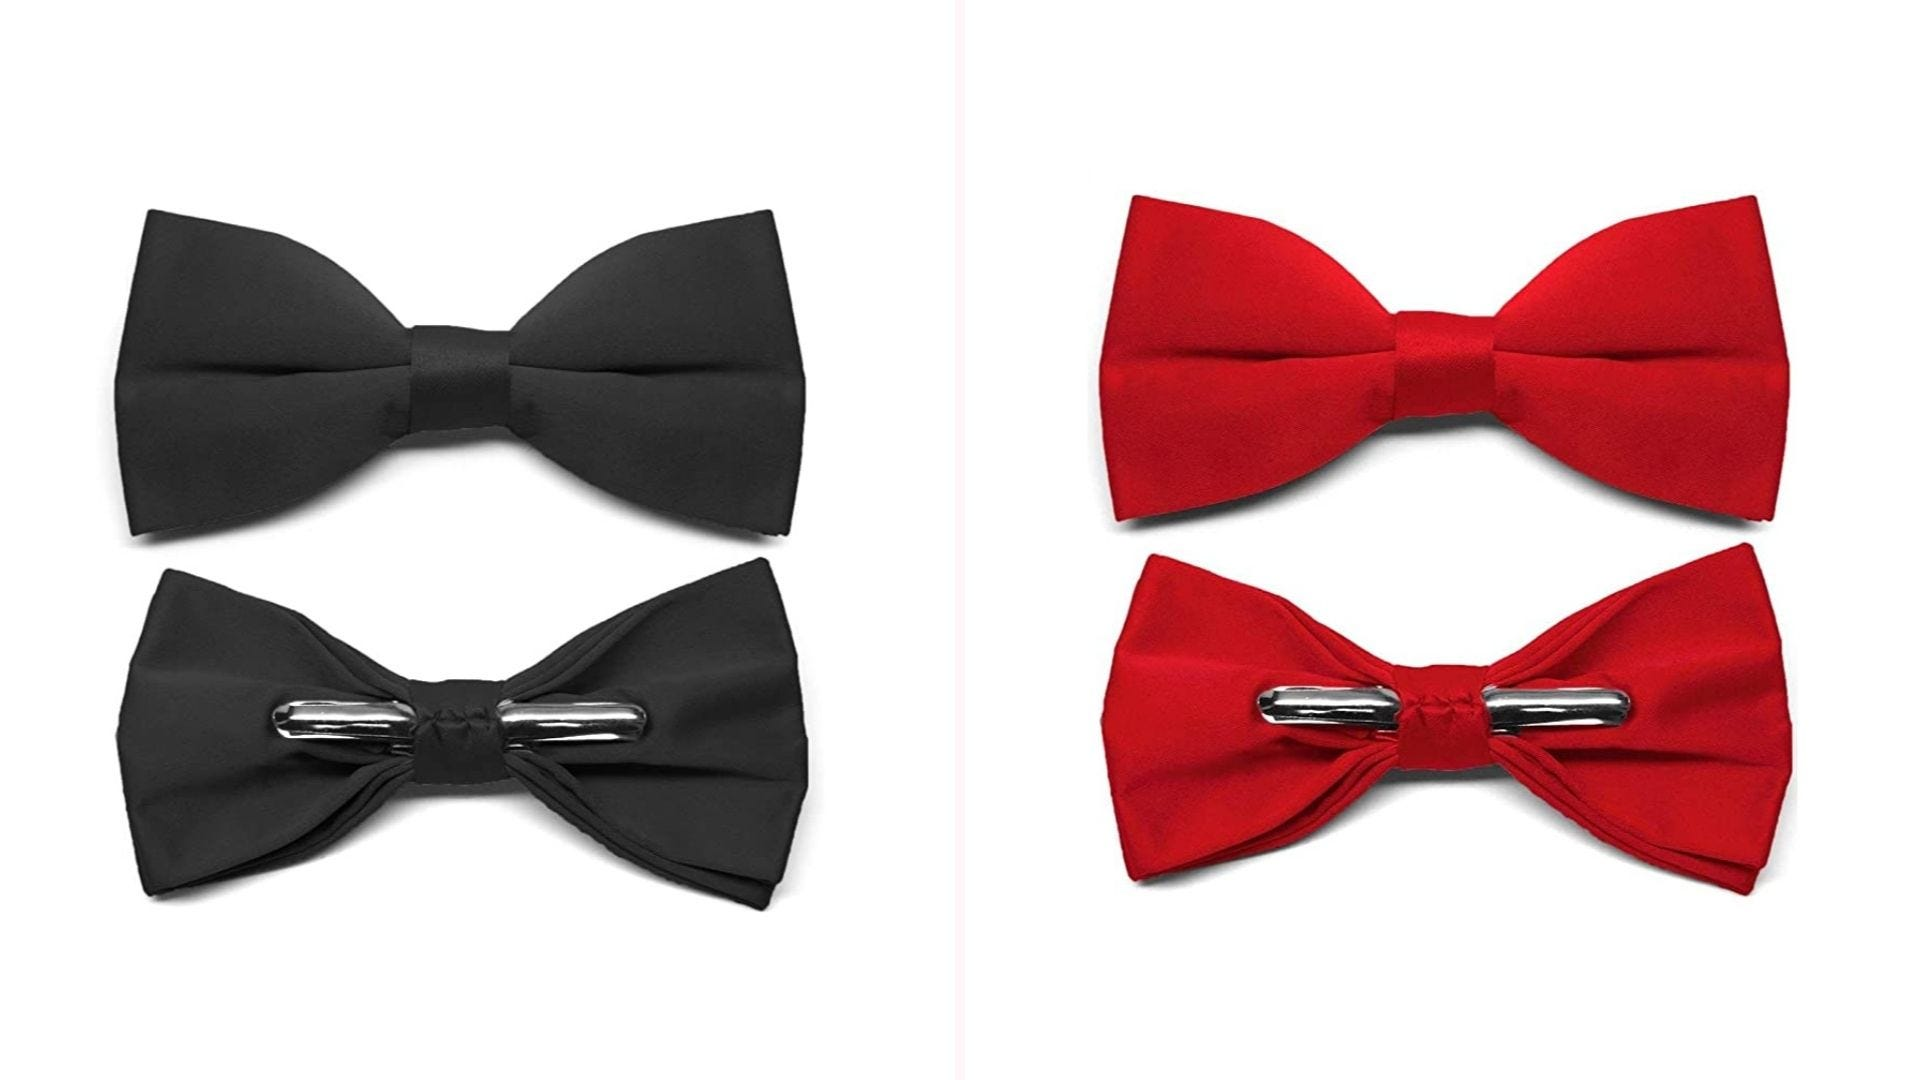 A front and back view of one black bow tie and one red bow tie.